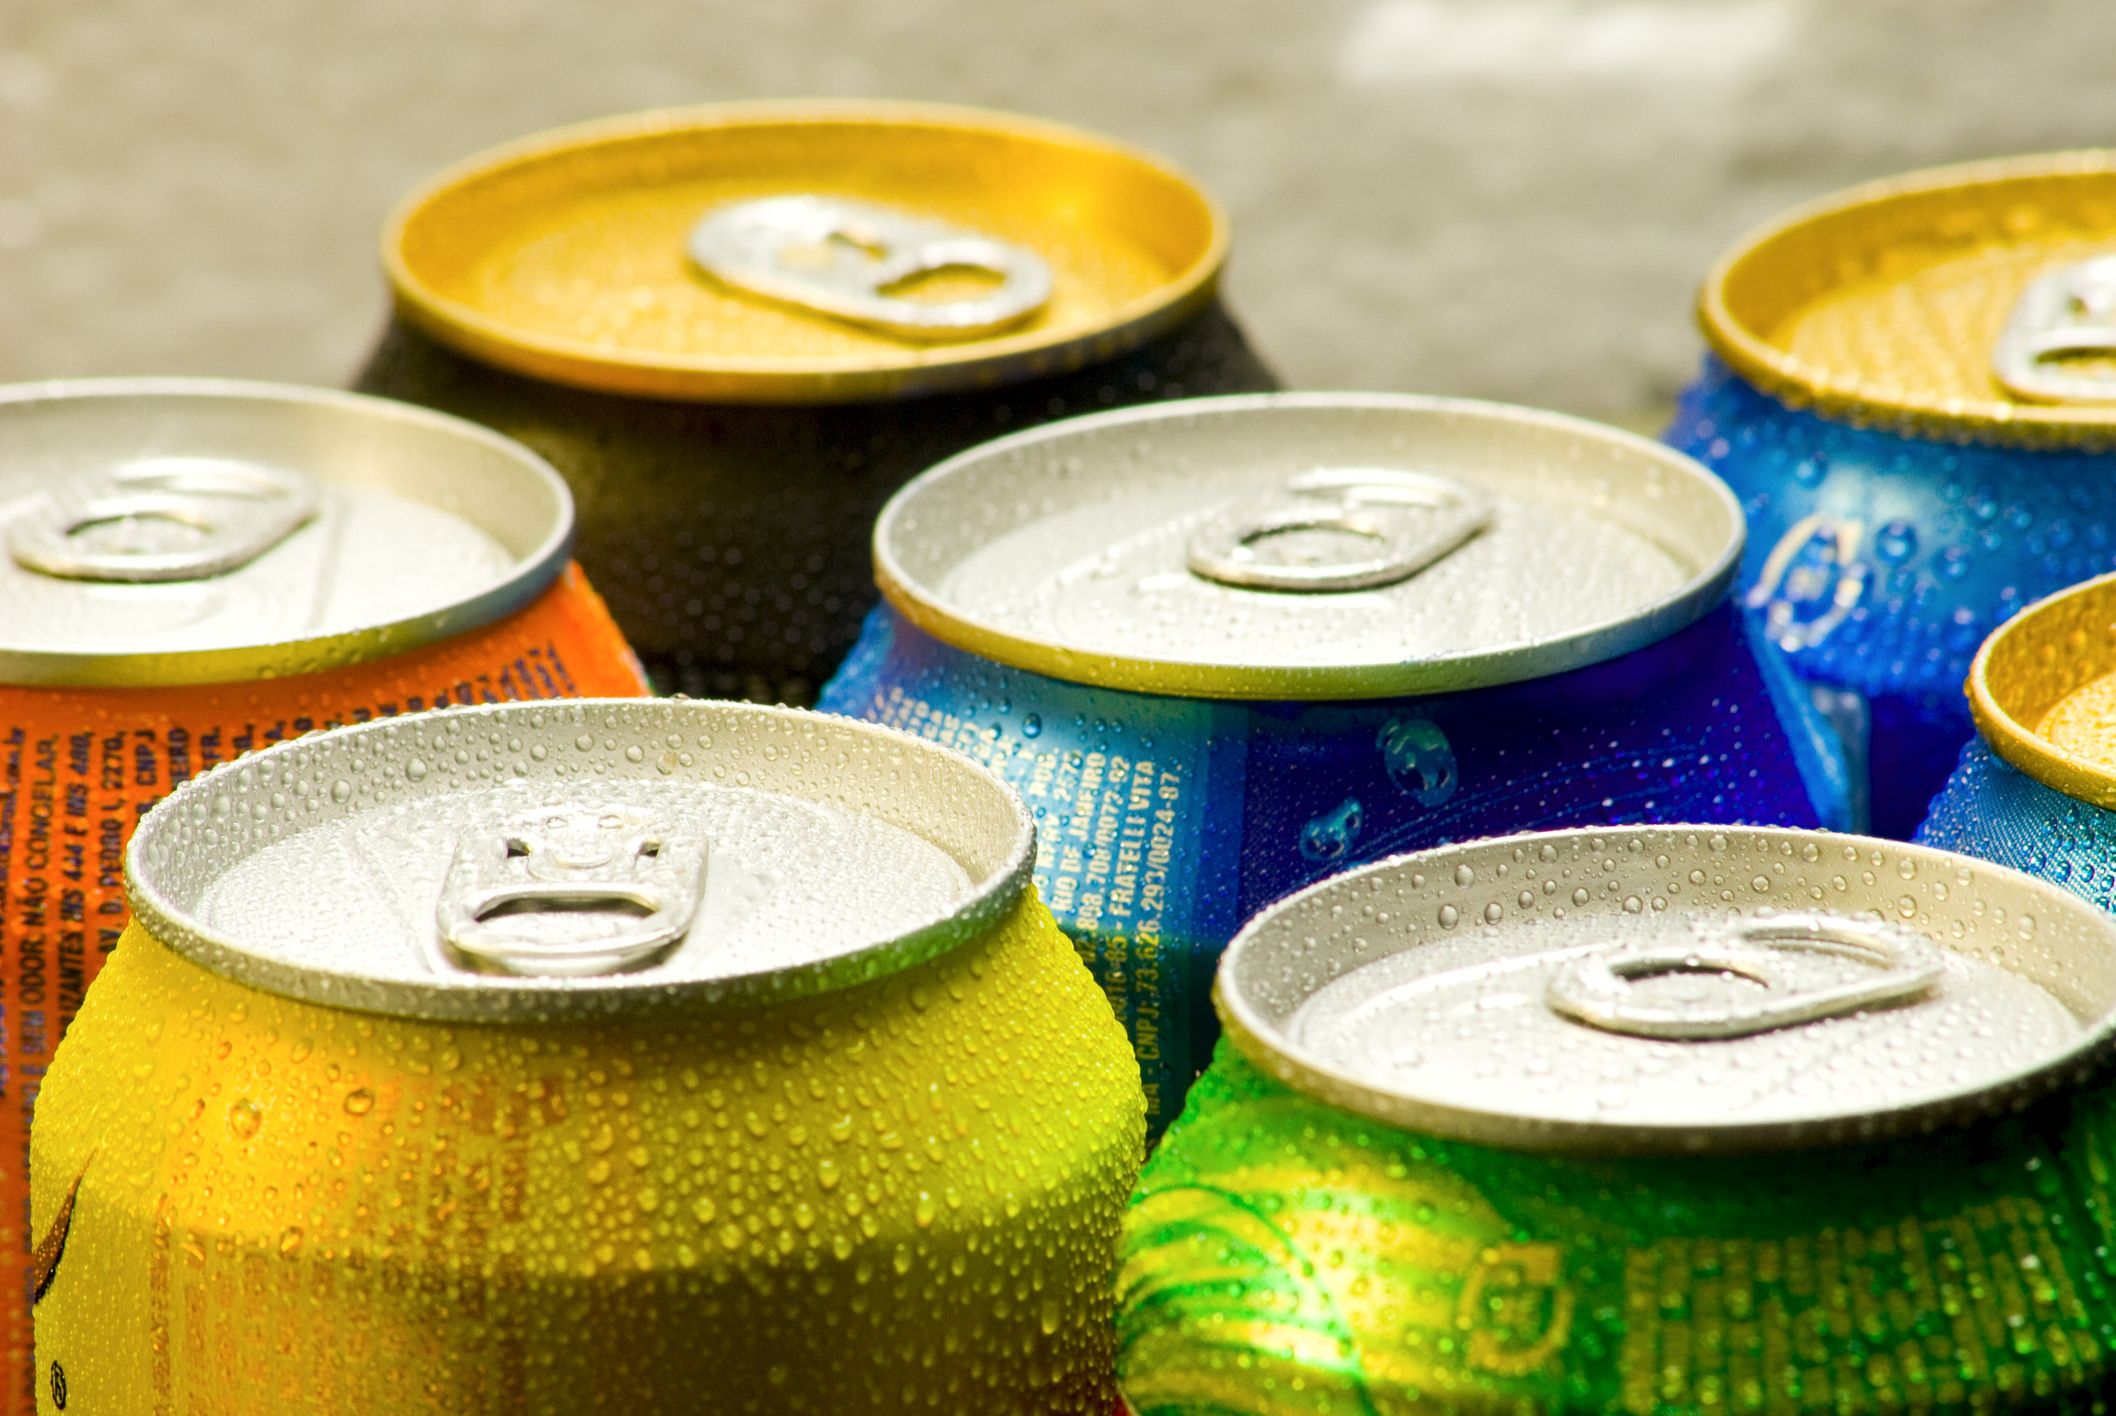 Aluminium cans of soft drink